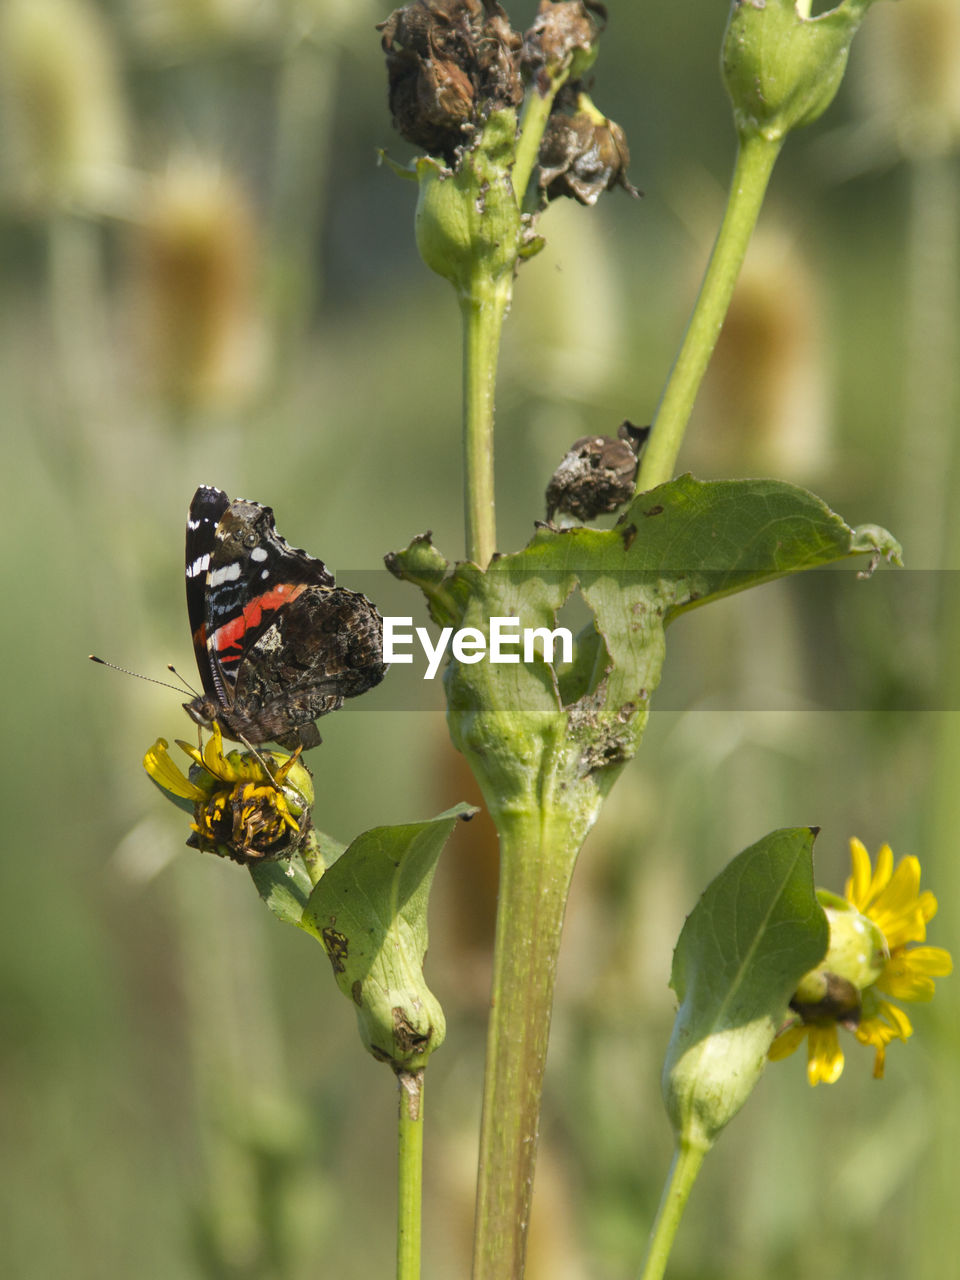 plant, flower, animal wildlife, flowering plant, animals in the wild, invertebrate, beauty in nature, insect, animal themes, growth, animal, close-up, vulnerability, green color, focus on foreground, fragility, nature, freshness, no people, day, flower head, outdoors, pollination, butterfly - insect